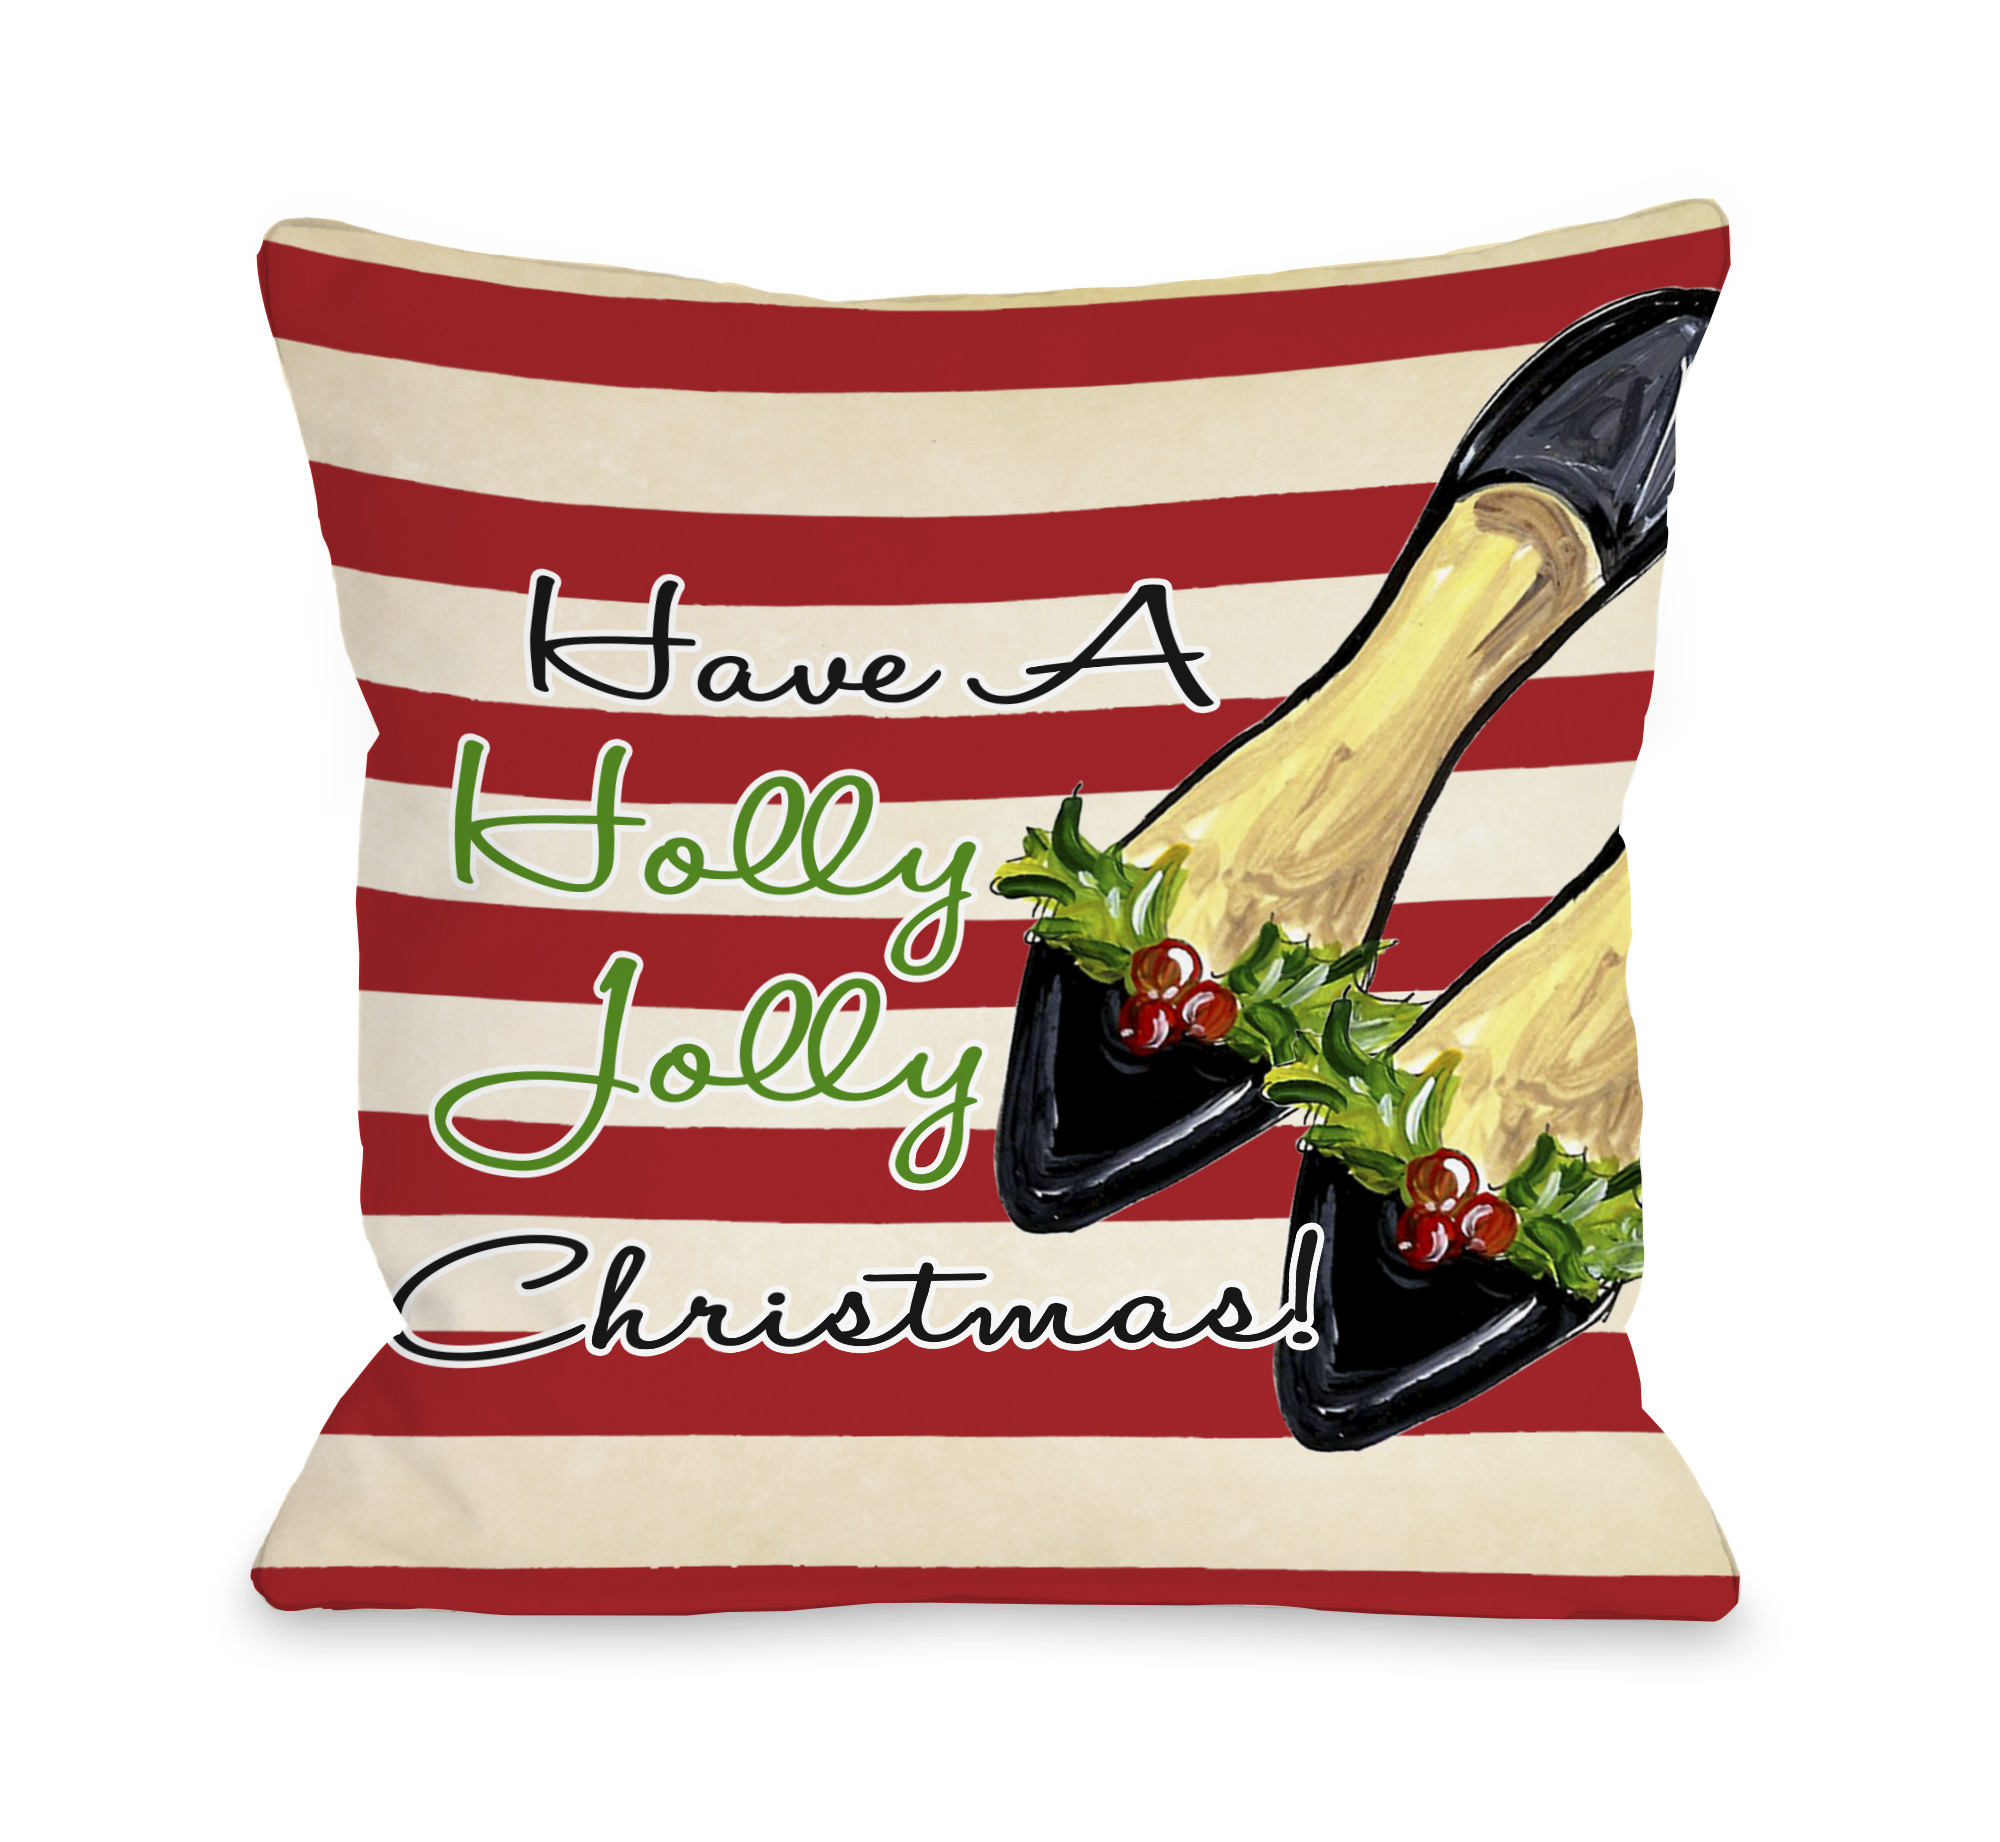 Holly Jolly Christmas Shoes - Tan Red 16x16 Pillow by Timree